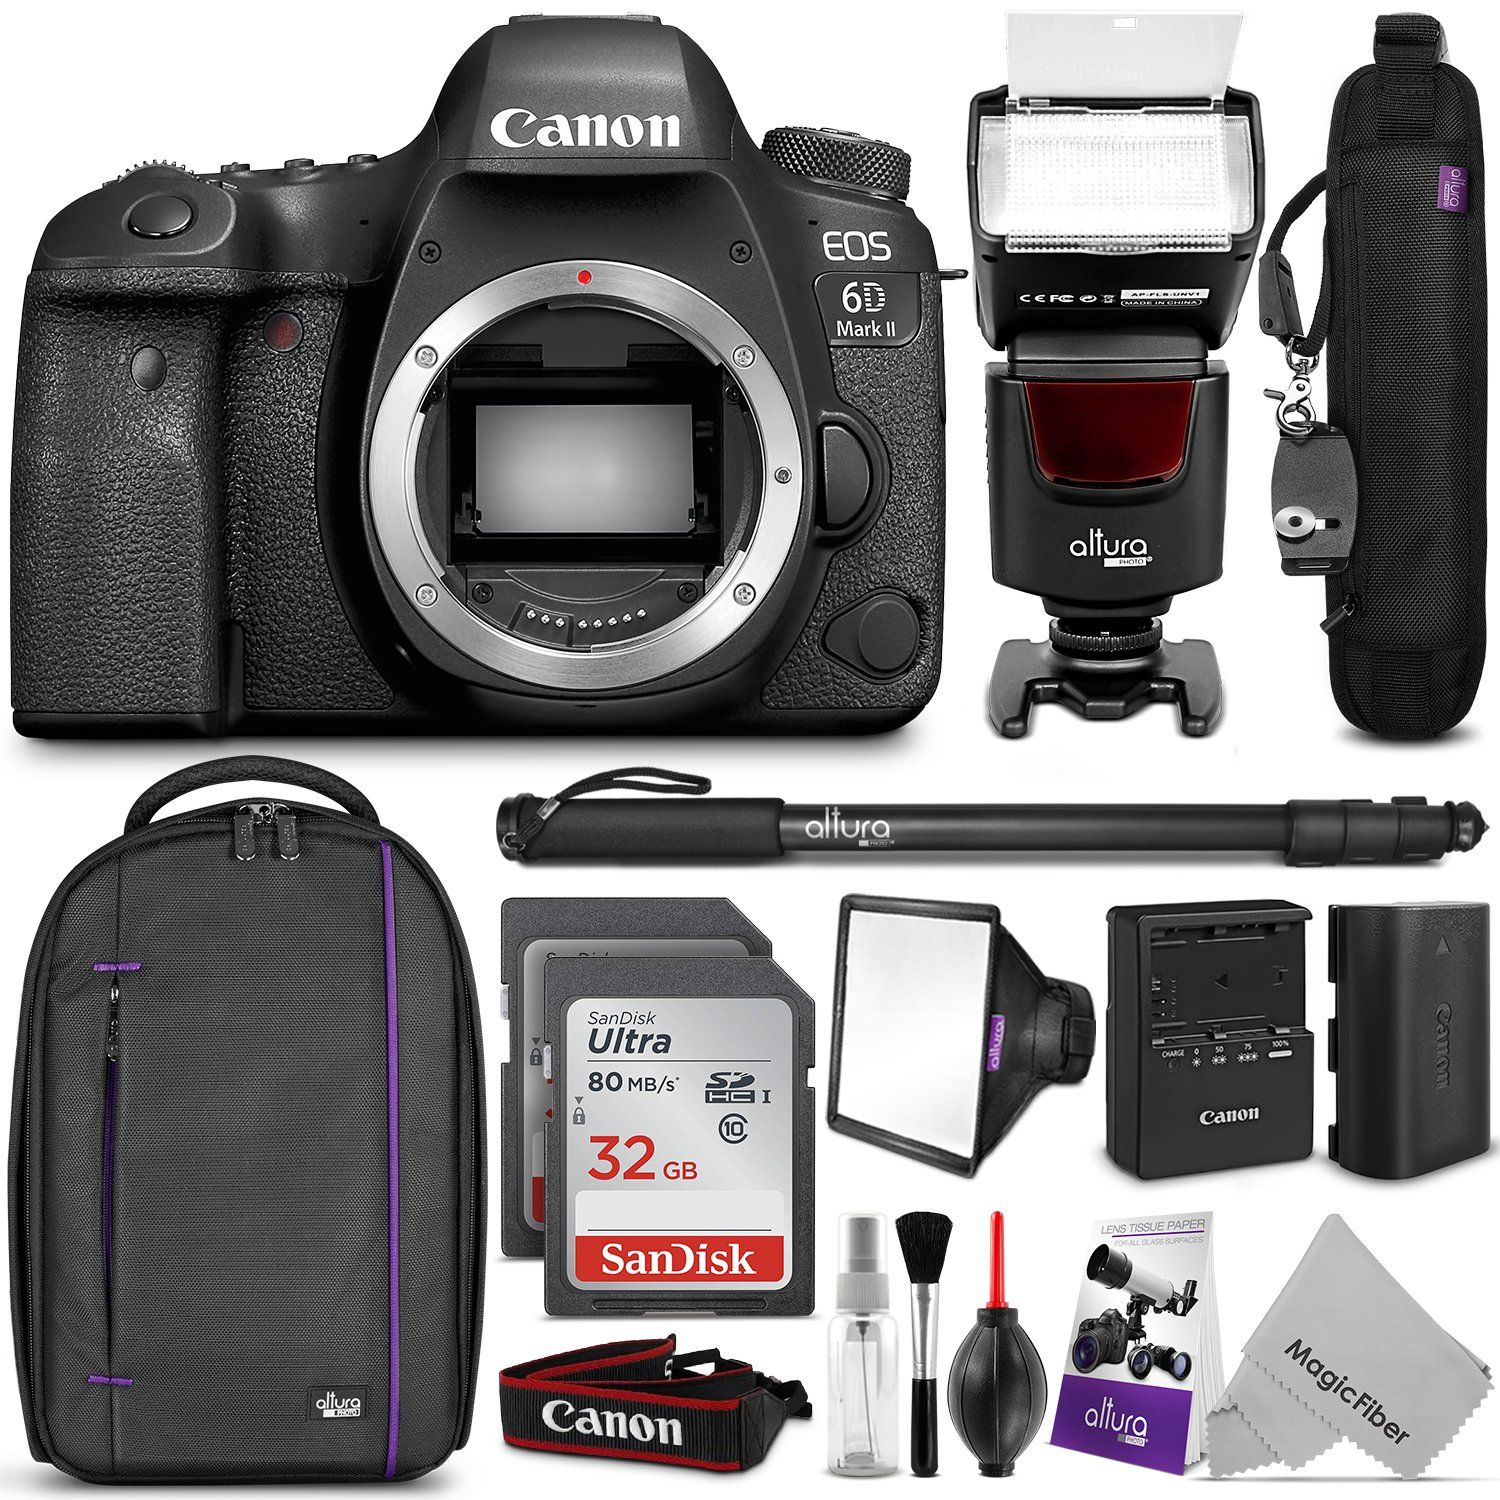 Canon Eos 6d Mark Ii Dslr Camera Body W Complete Photo And Travel